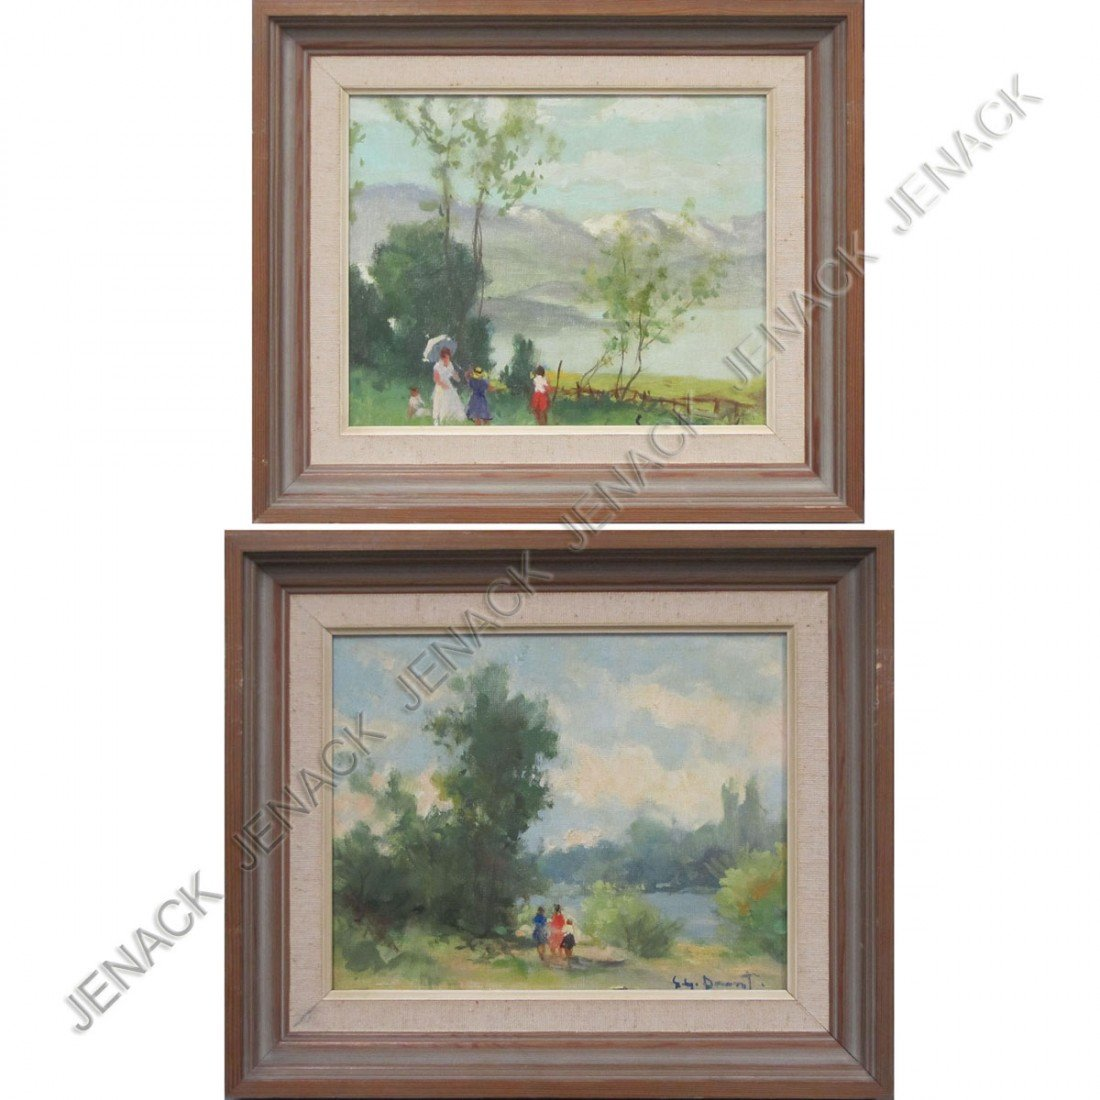 18: SUZANNE DEMAREST (FRENCH 1900-1985), LOT (2) OIL